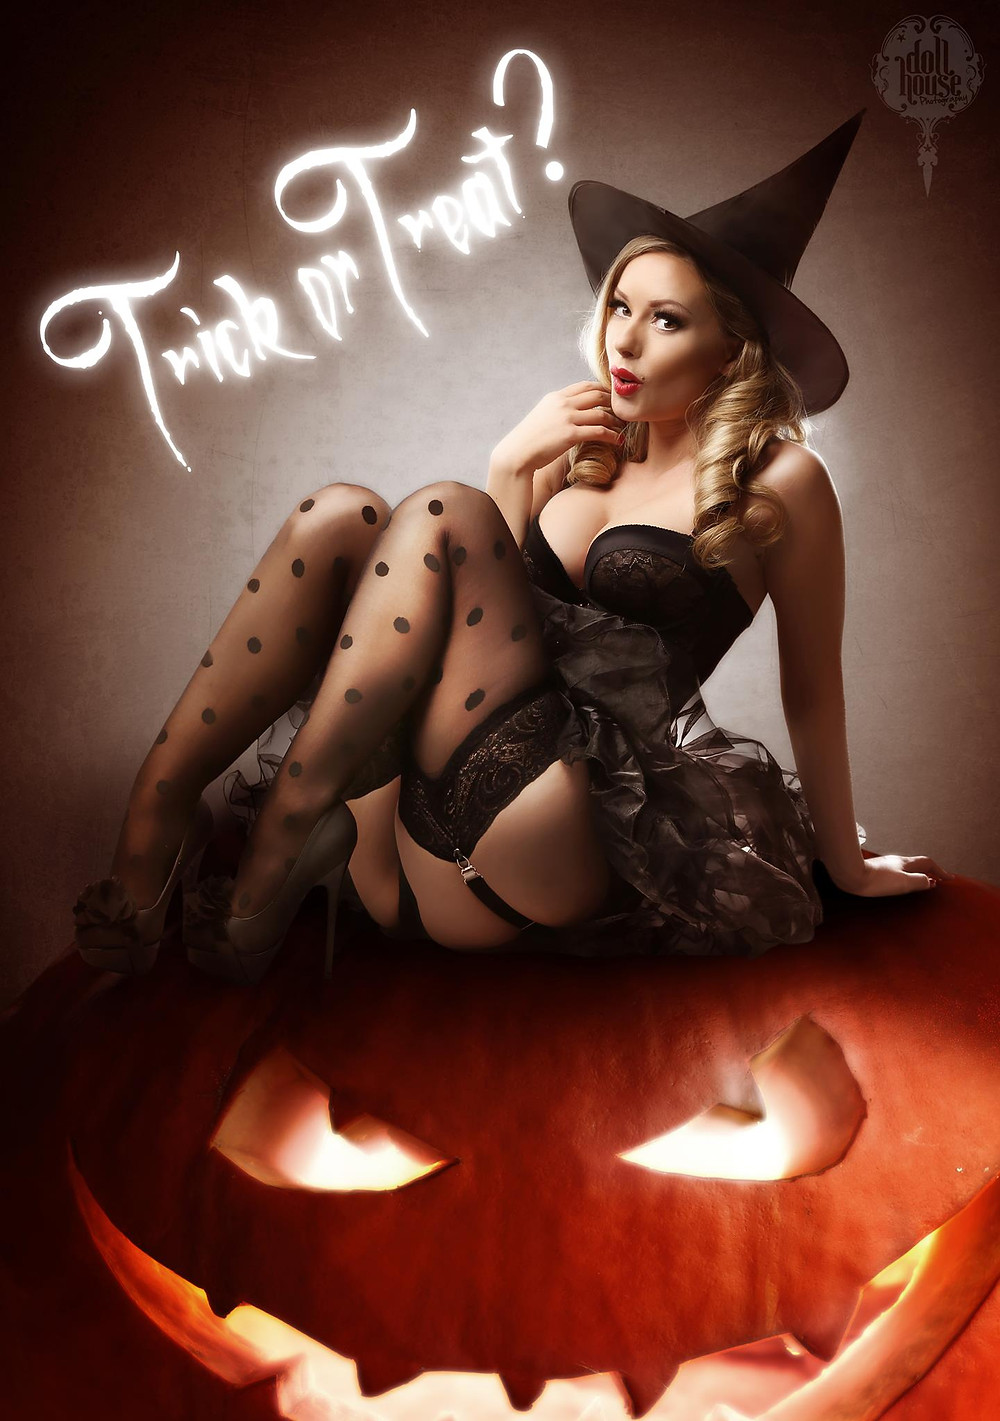 Halloween Witch Pinup | Heather Valentine Pin Up Model By Dollhouse Photography